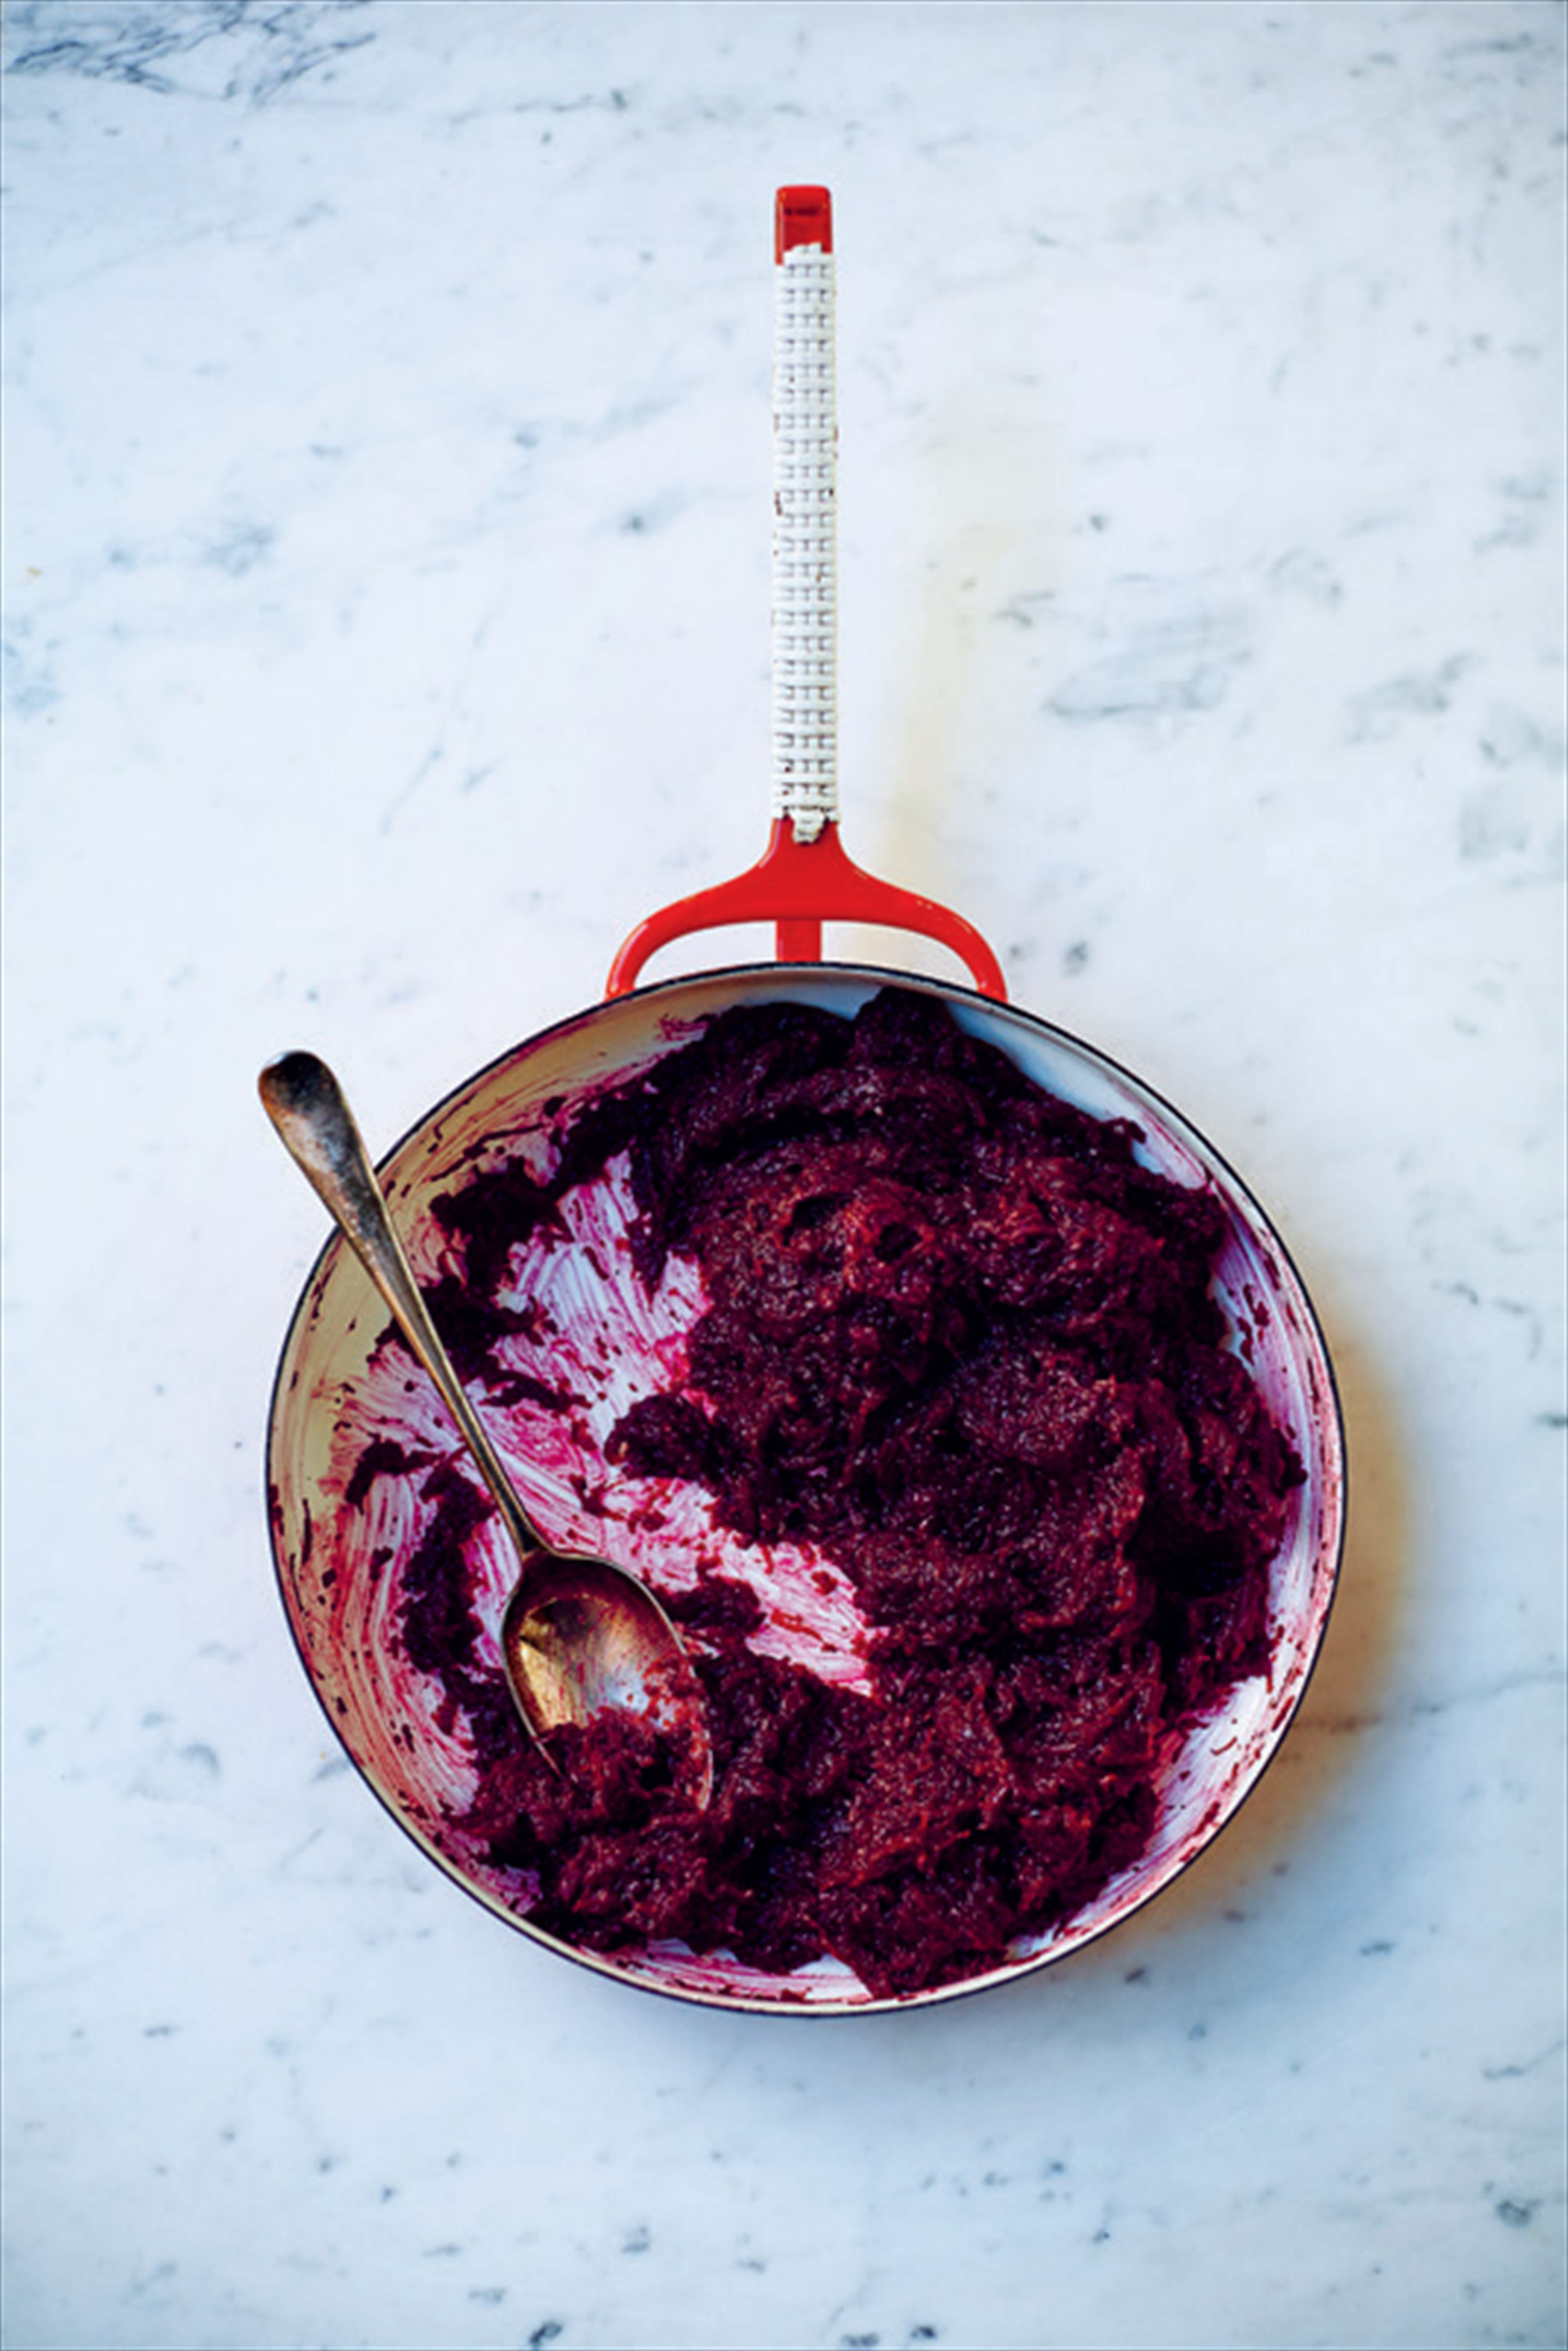 Beetroot puree